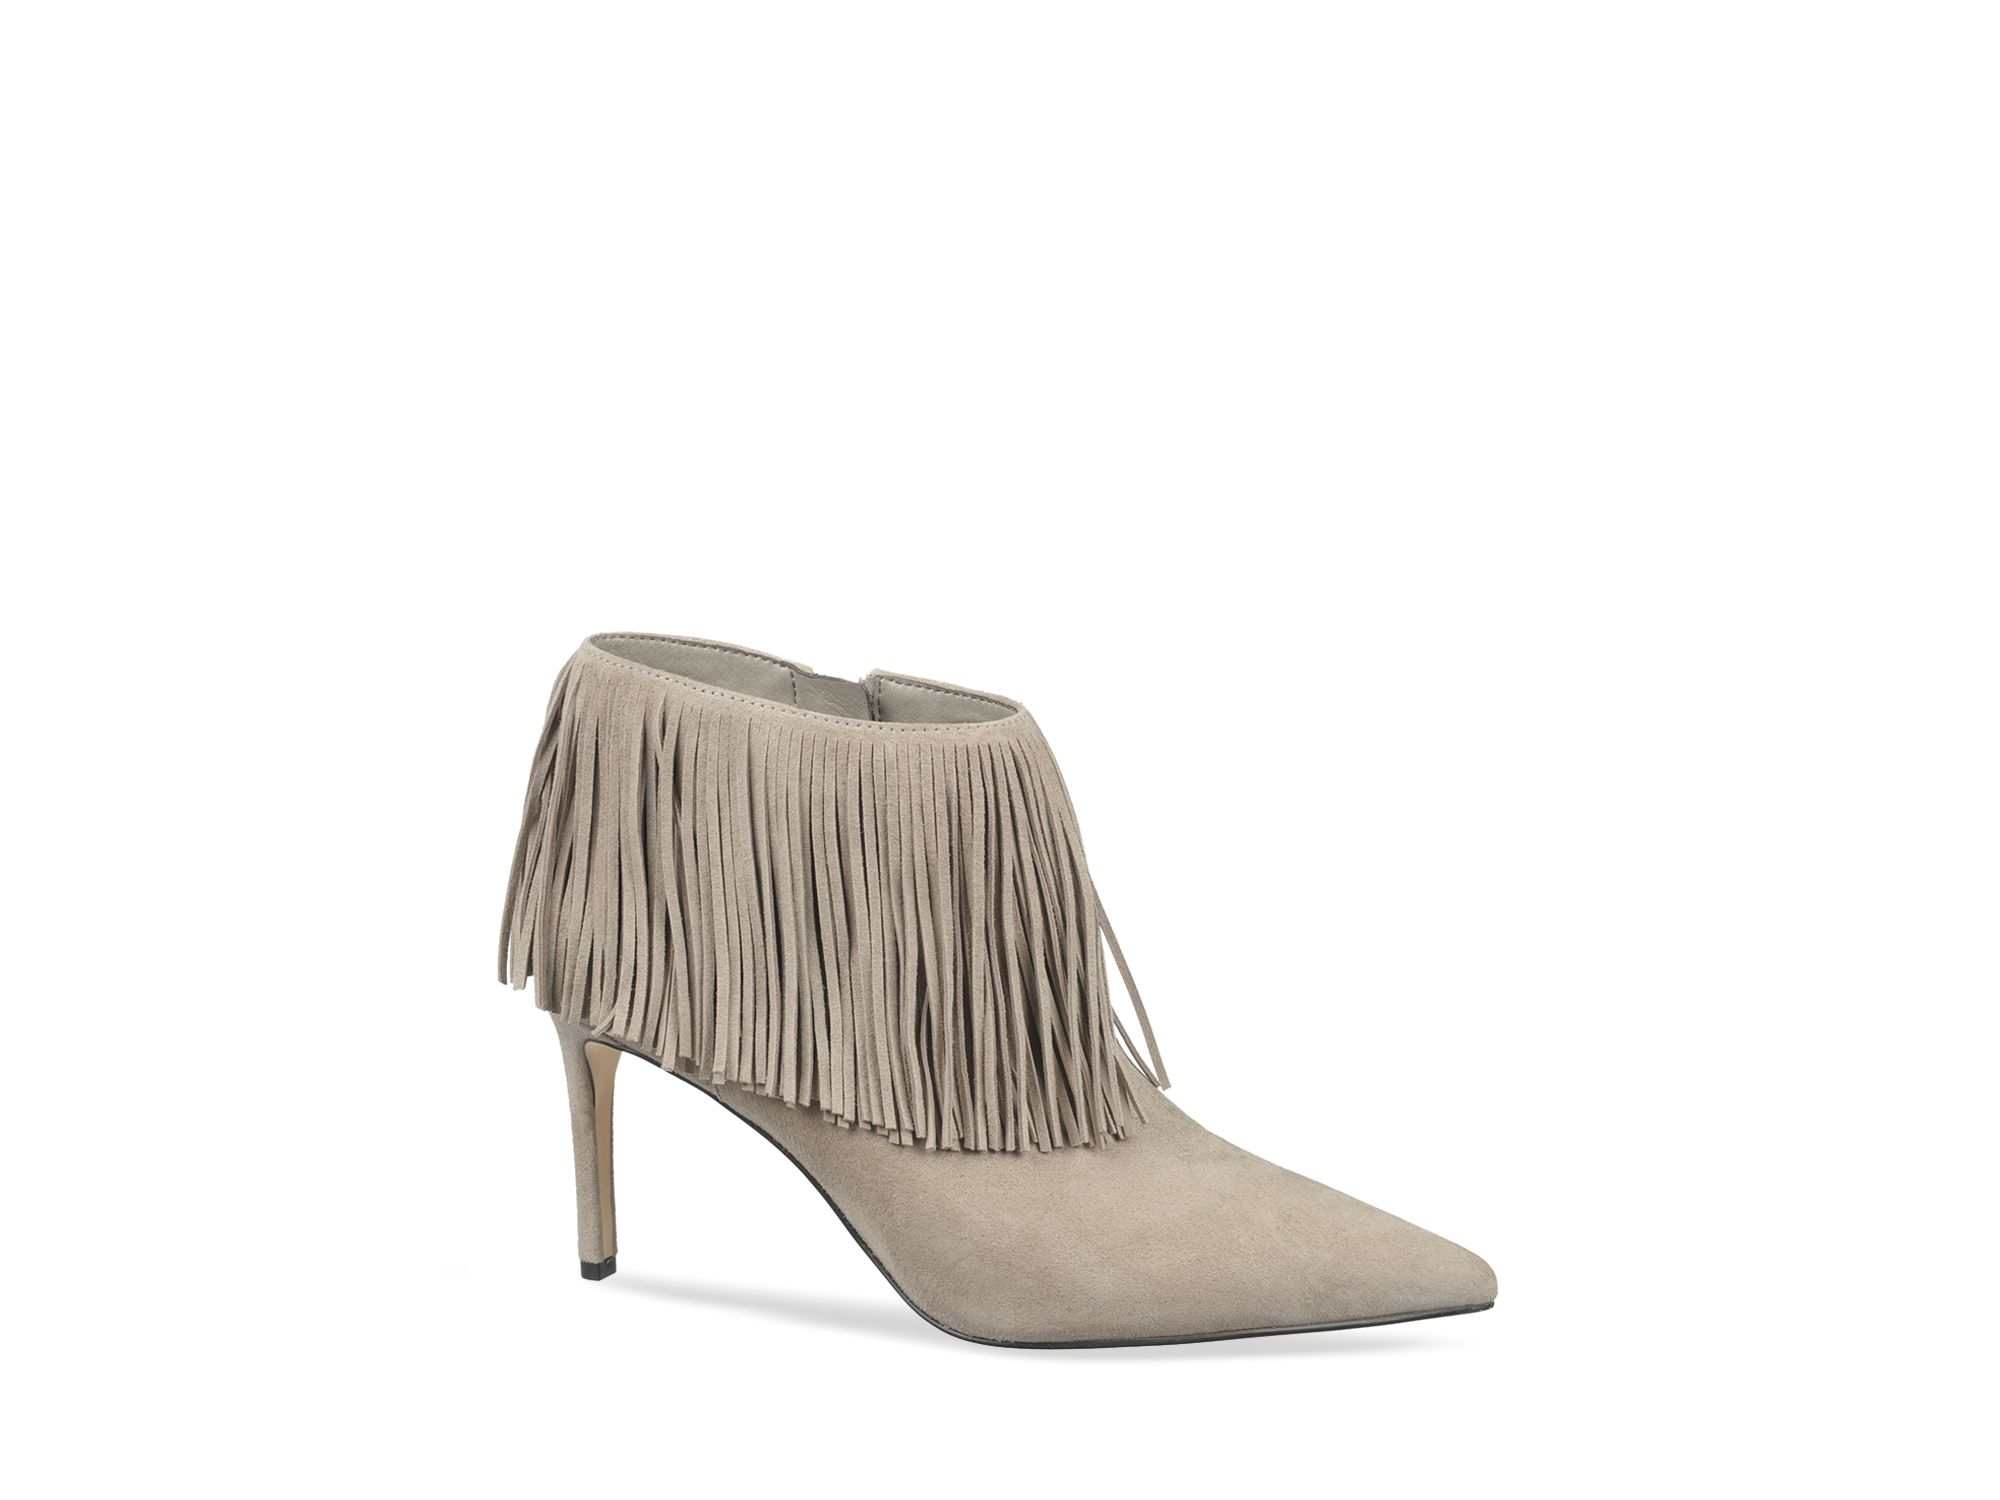 71d5b2735 Gallery. Previously sold at  Bloomingdale s · Women s Furry Boots ...